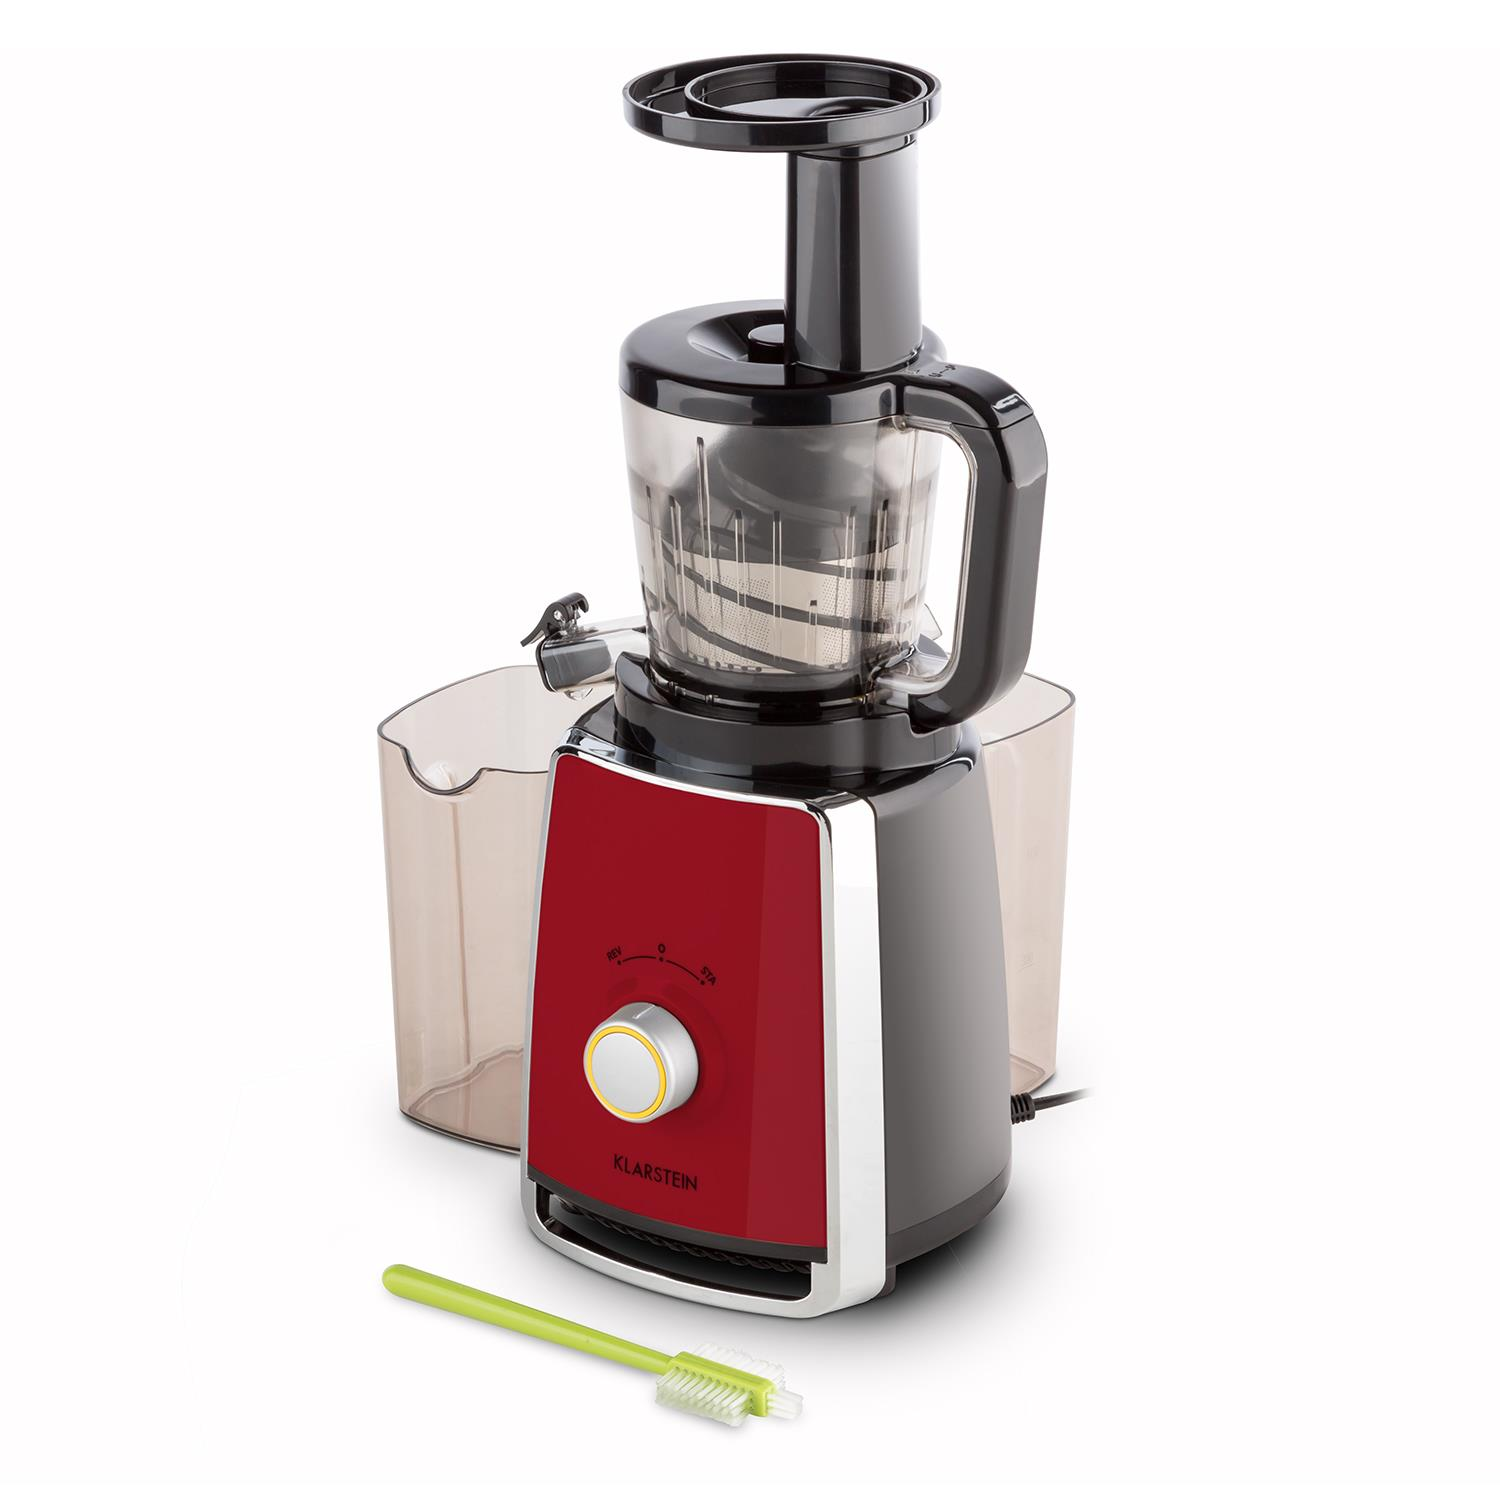 Klarstein Slow Juicer Gebraucht : KLARSTEIN SLOW JUICER ELECTRIC TABLE TOP KITCHEN MACHINE COLD PRESS FRUIT JUICE eBay